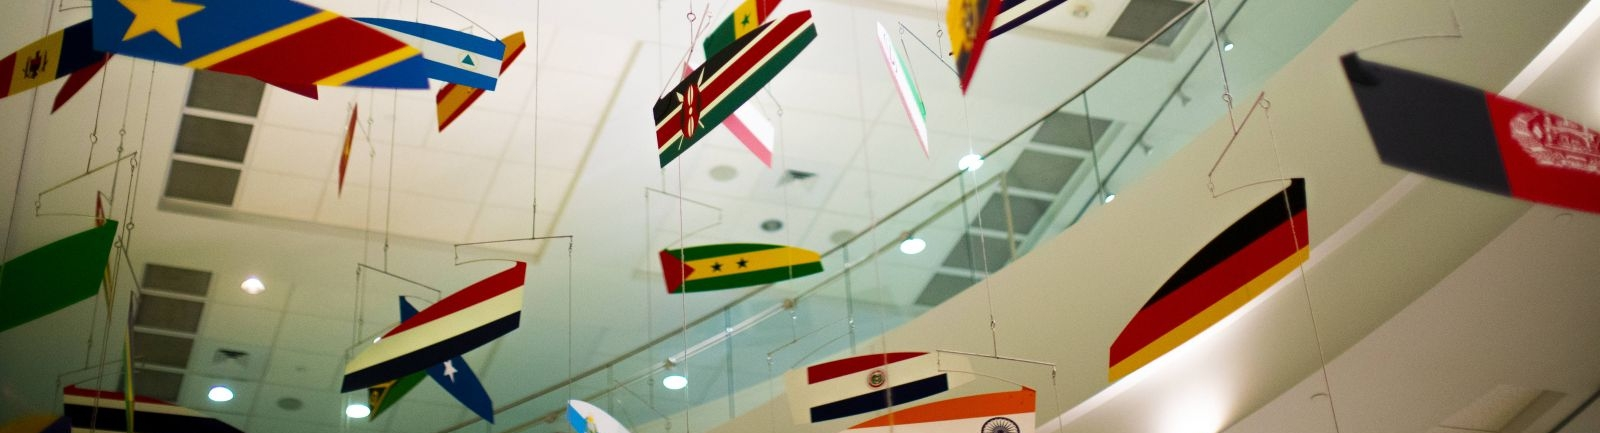 Flags adorn a ceiling in the Fox School of Business at Temple University.